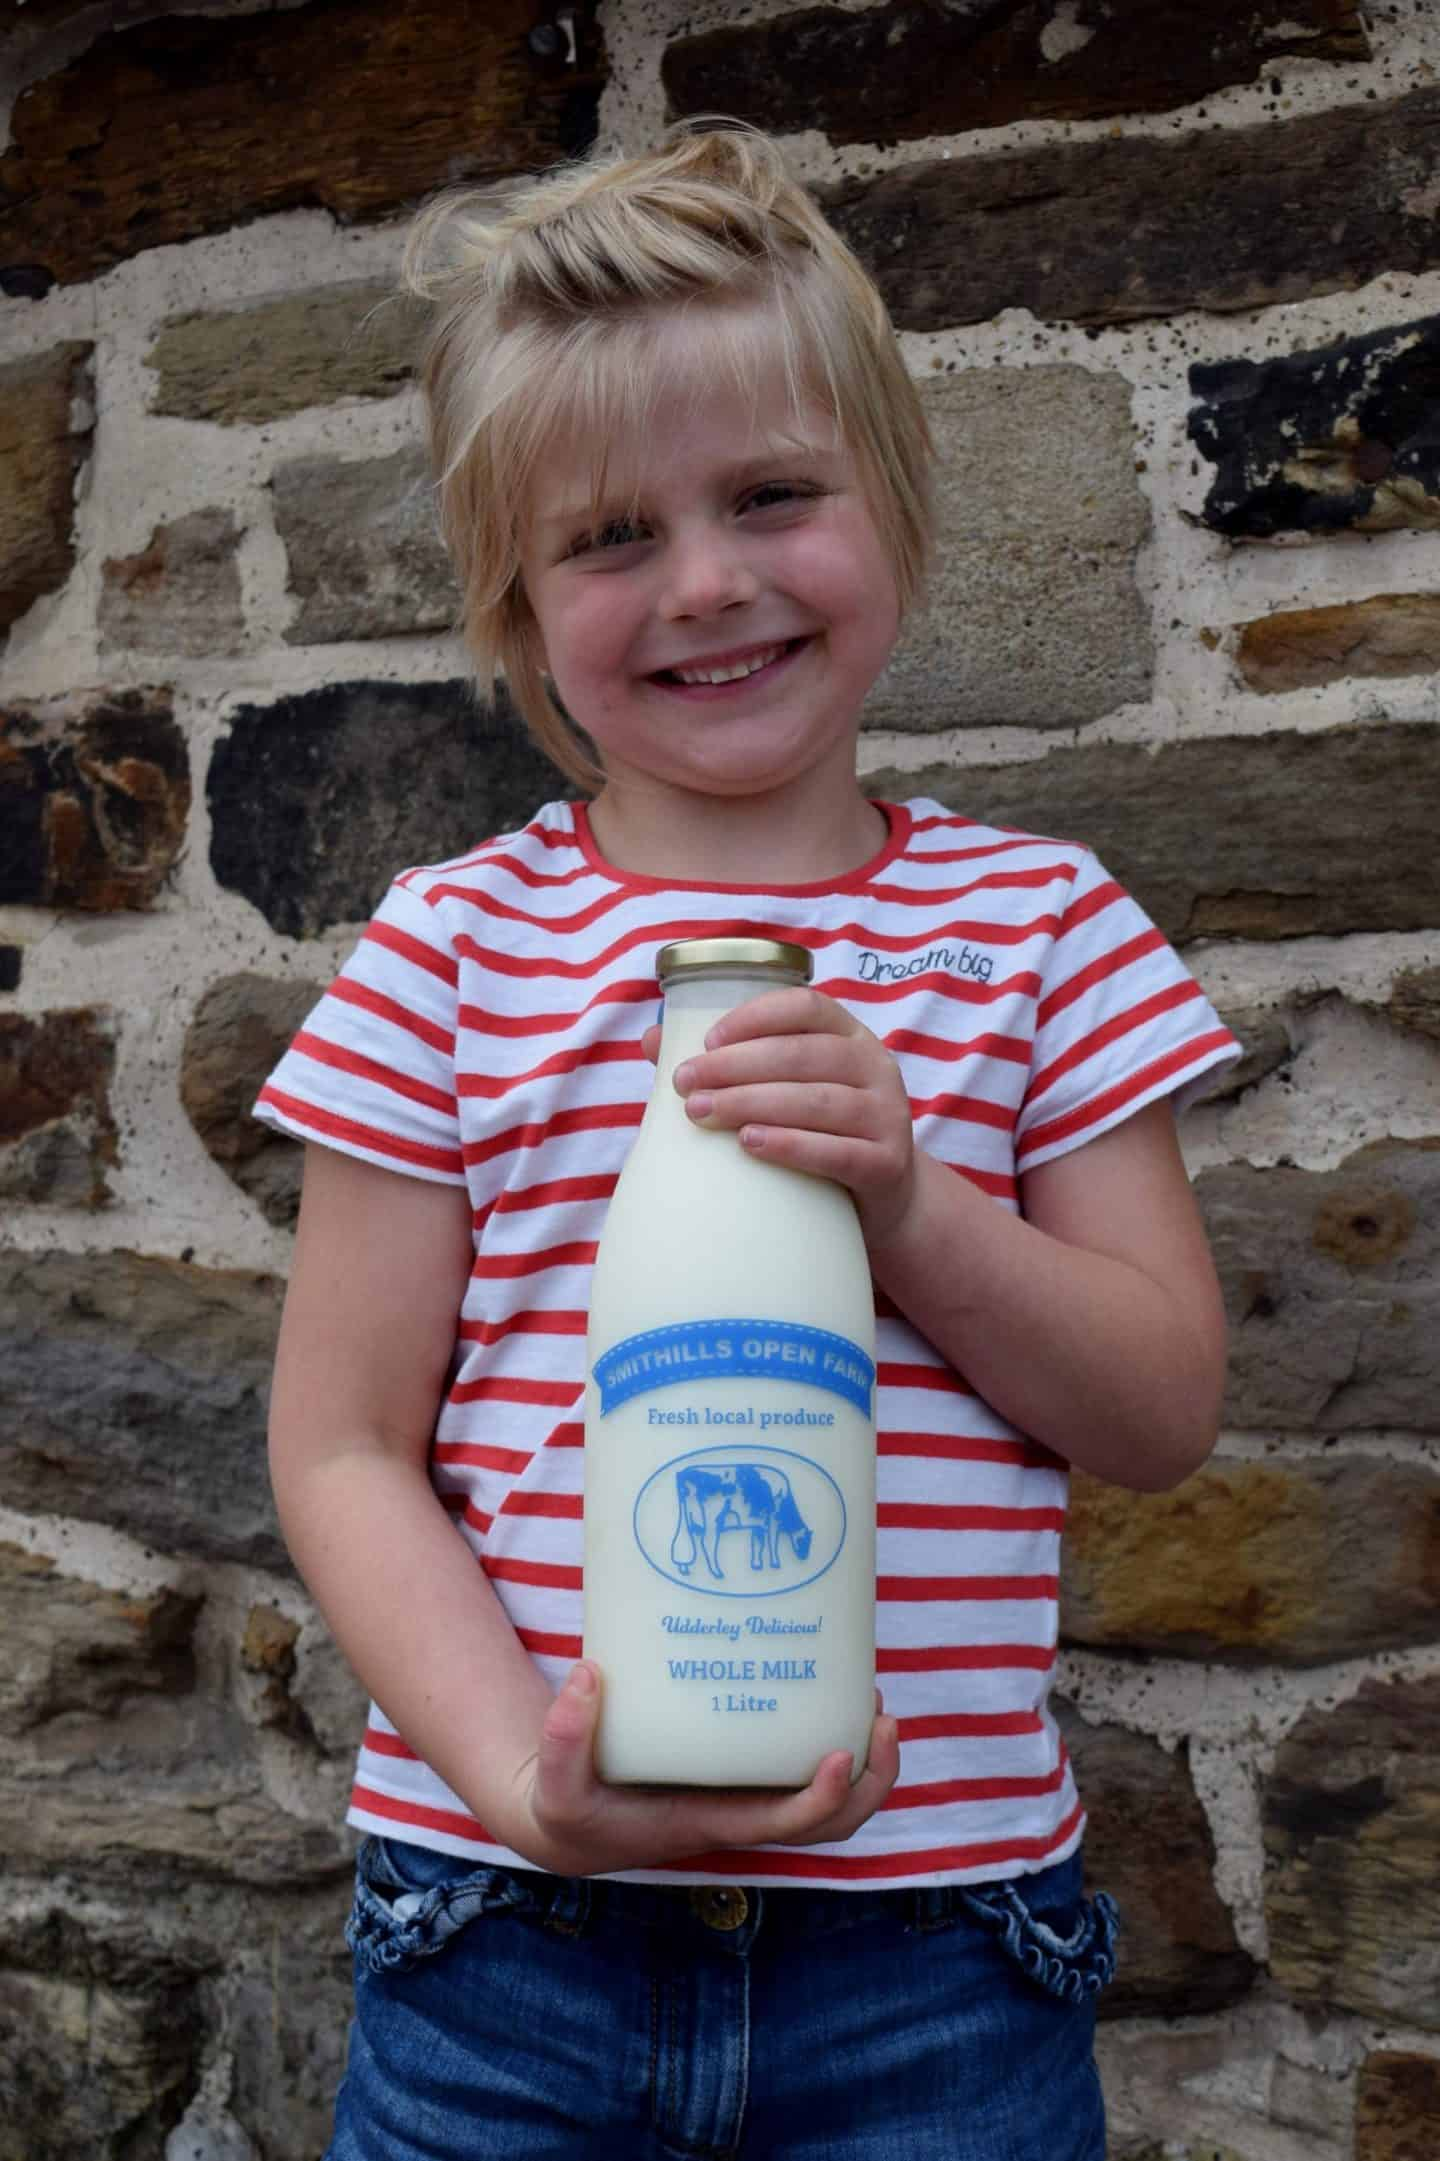 Smithills Farm milk in glass bottles